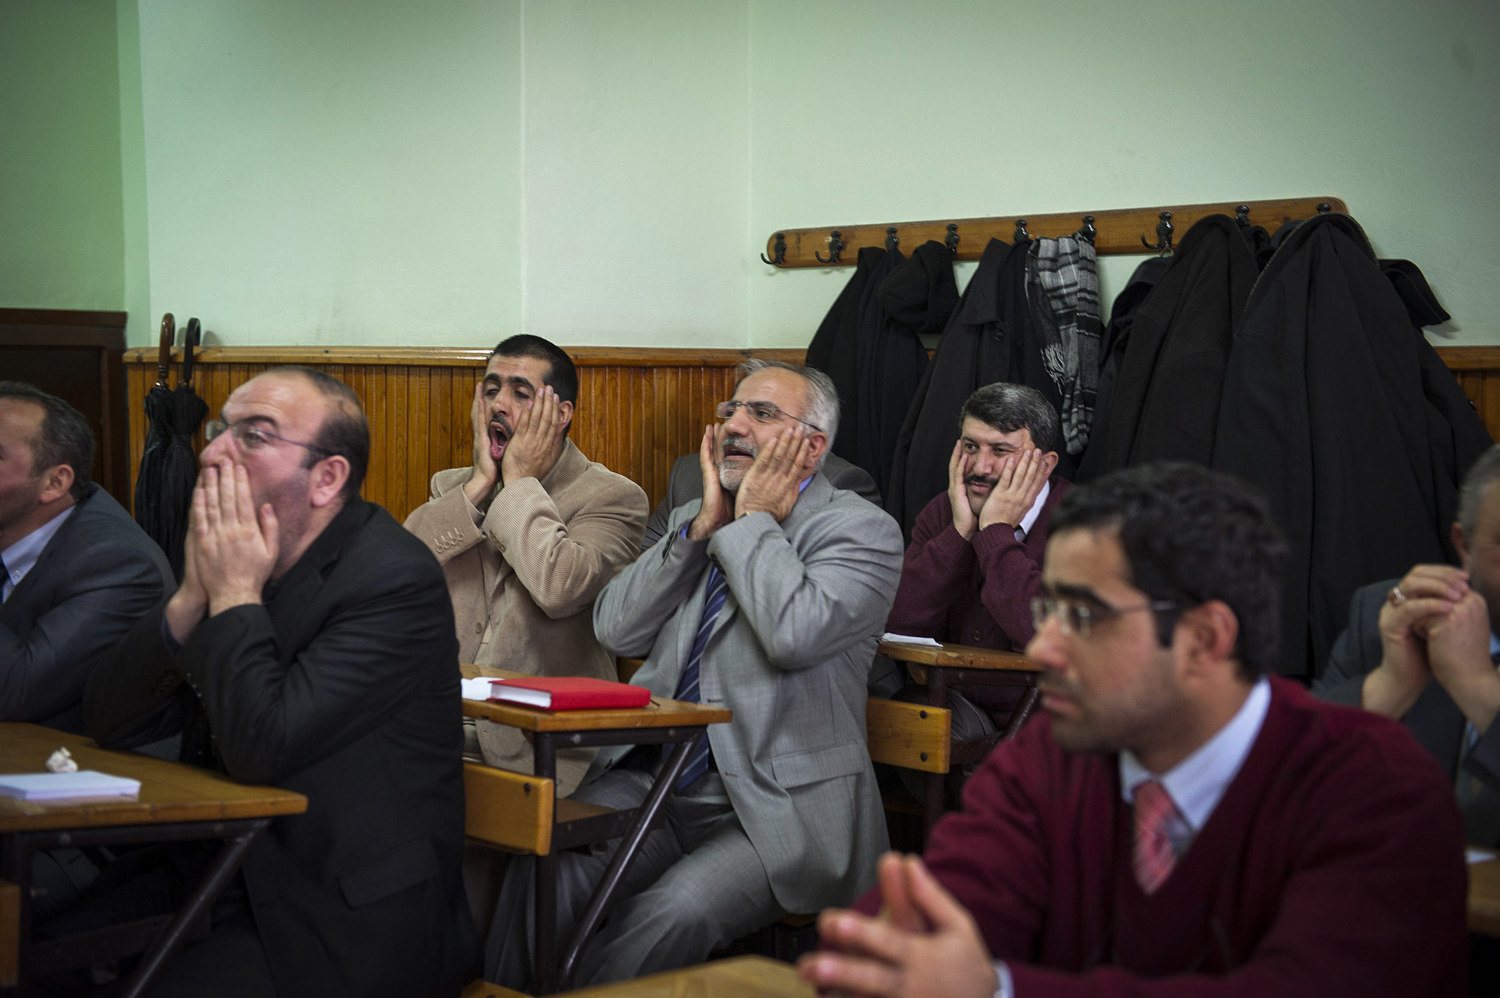 Imams and other religions scholars attend Singing lessons held by the Beyoglu Müftülüğü¸ in Istanbul Turkey. The lessons, taught by Fikret Yasin are held twice a week for an average of 20 scholars. During the lesson they focus on singing scales and instruction on singing the Azan, or call to prayer.